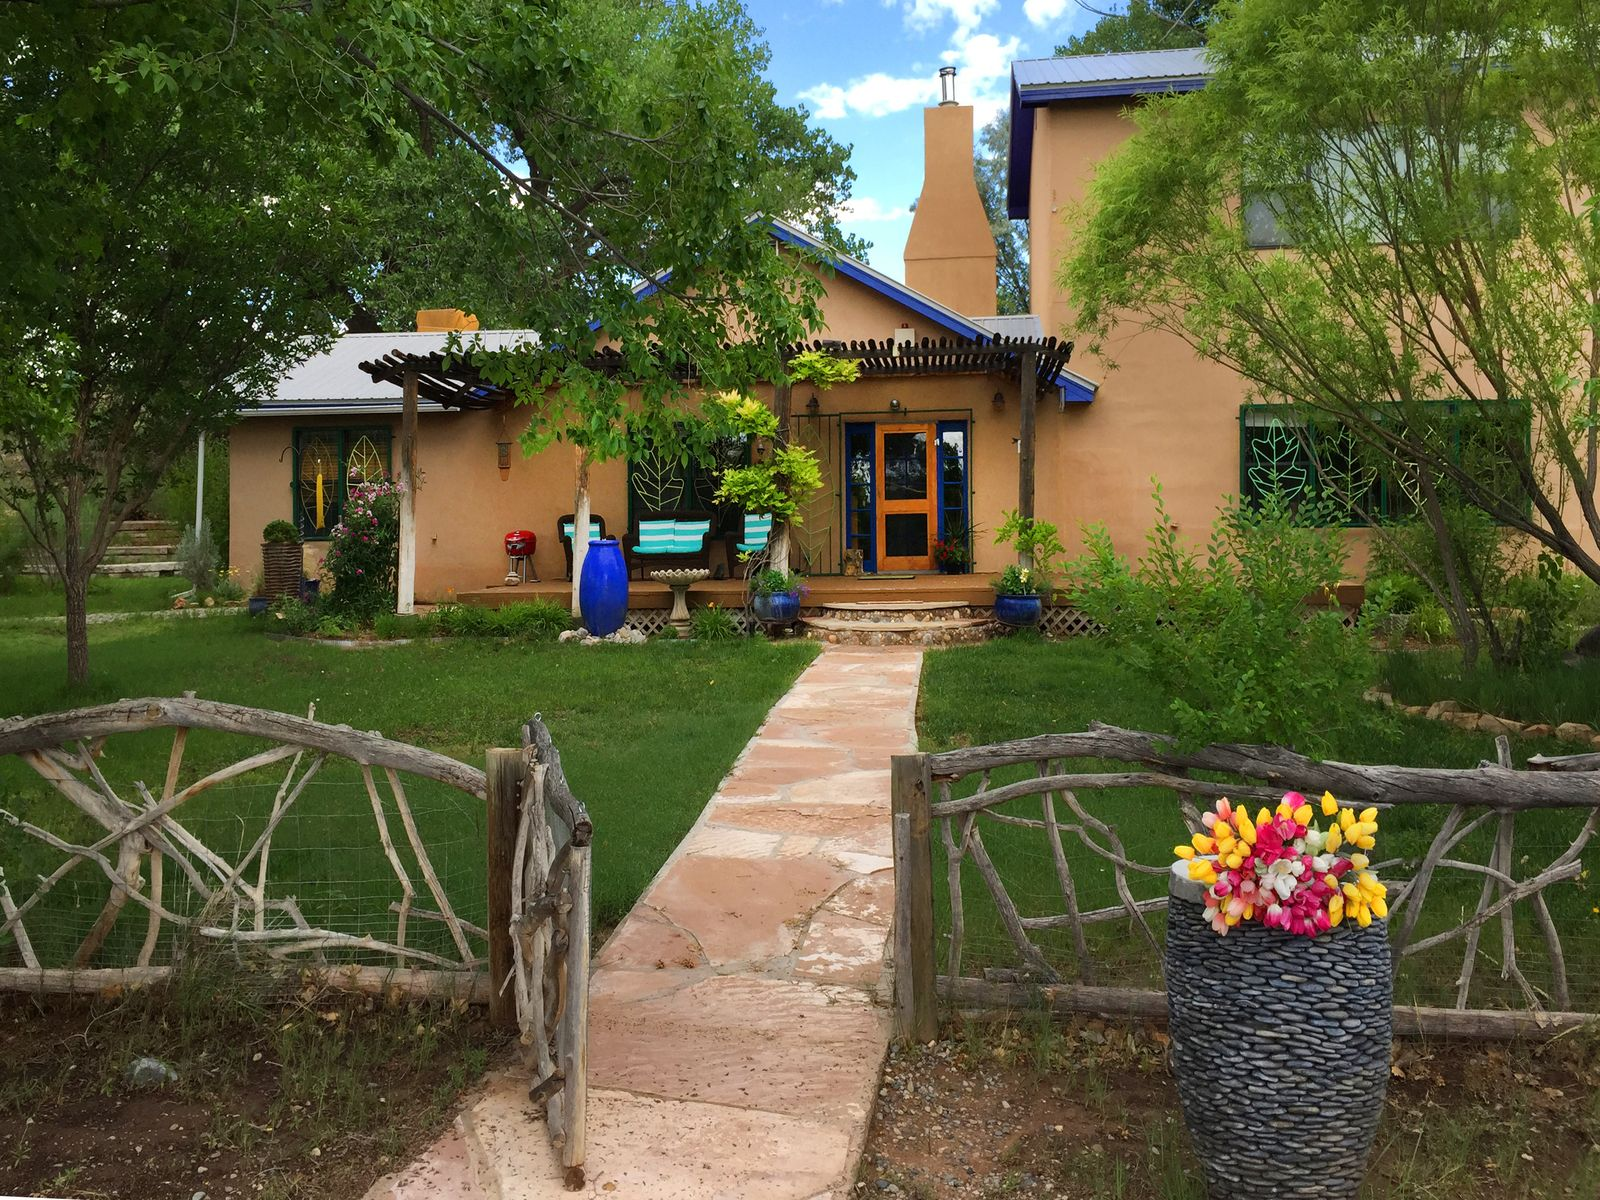 County Road 142 Wonderland Compound., Abiquiu NM Single Family Home - Santa Fe Real Estate